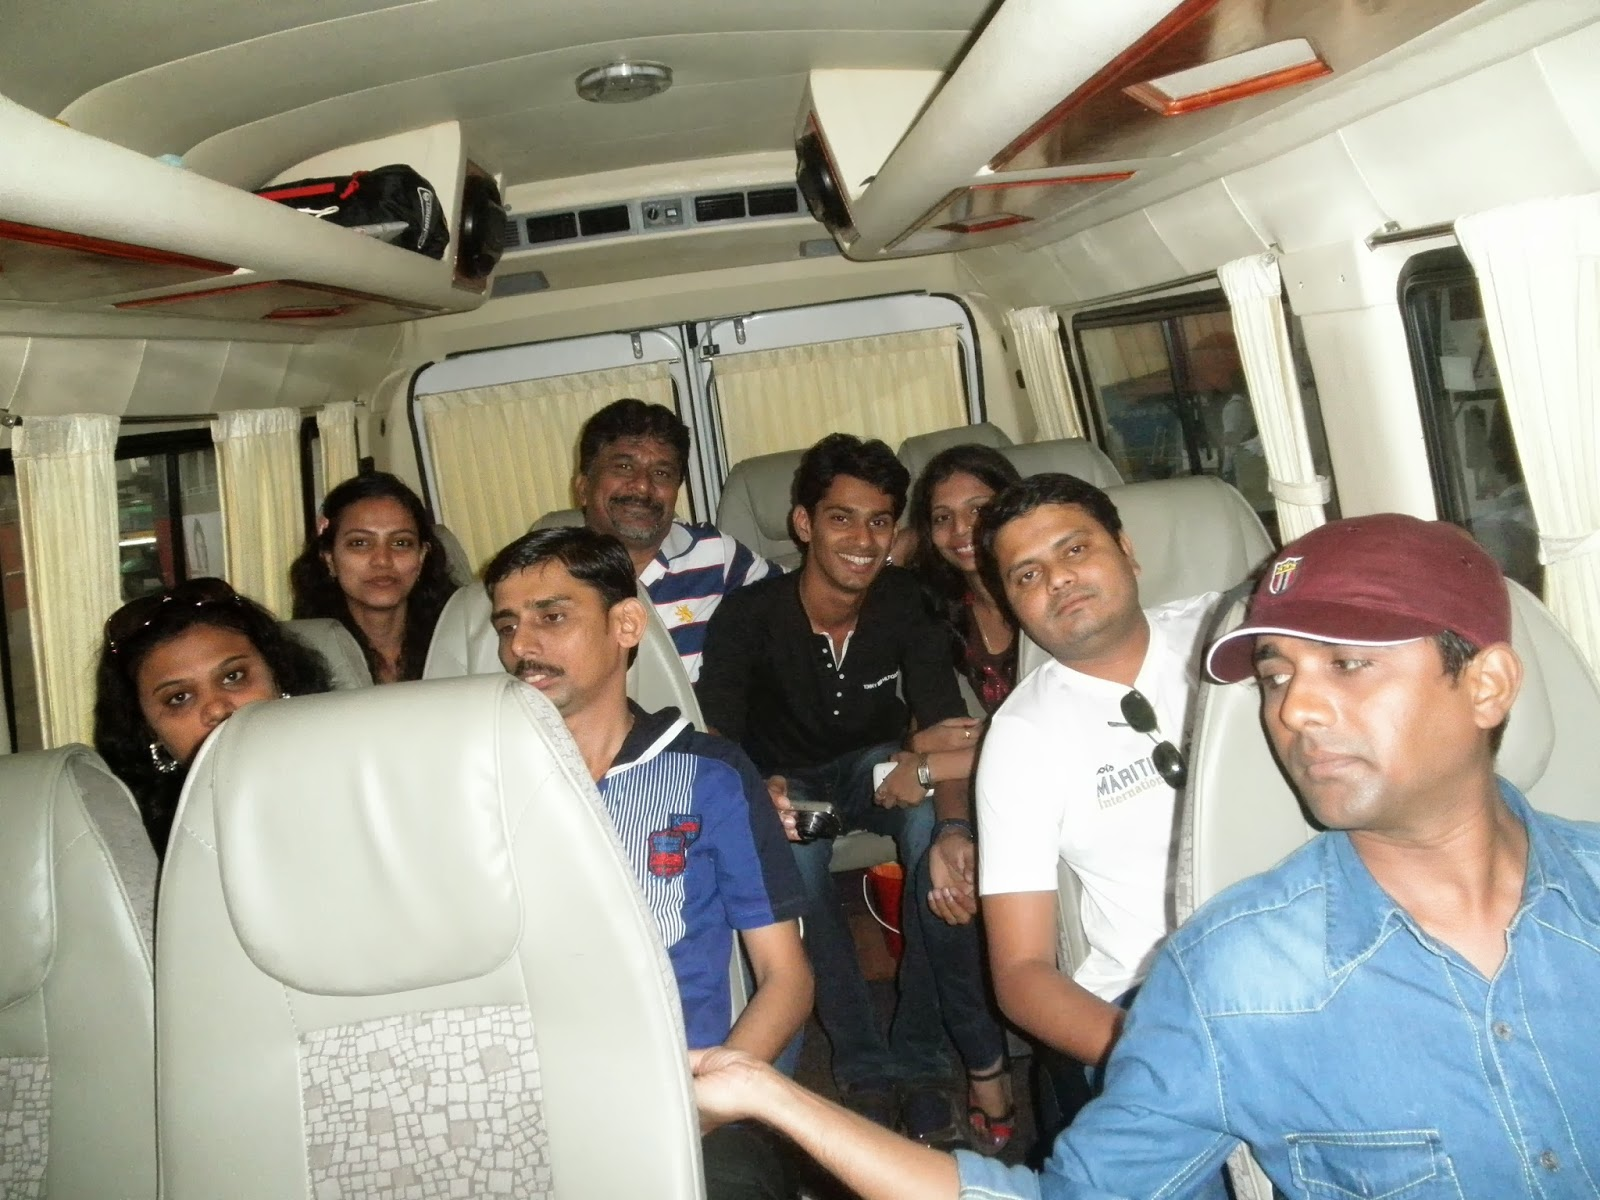 http://www.munnartourguide.com/2014/02/03-nights-04-days-kerala-budget-group.html